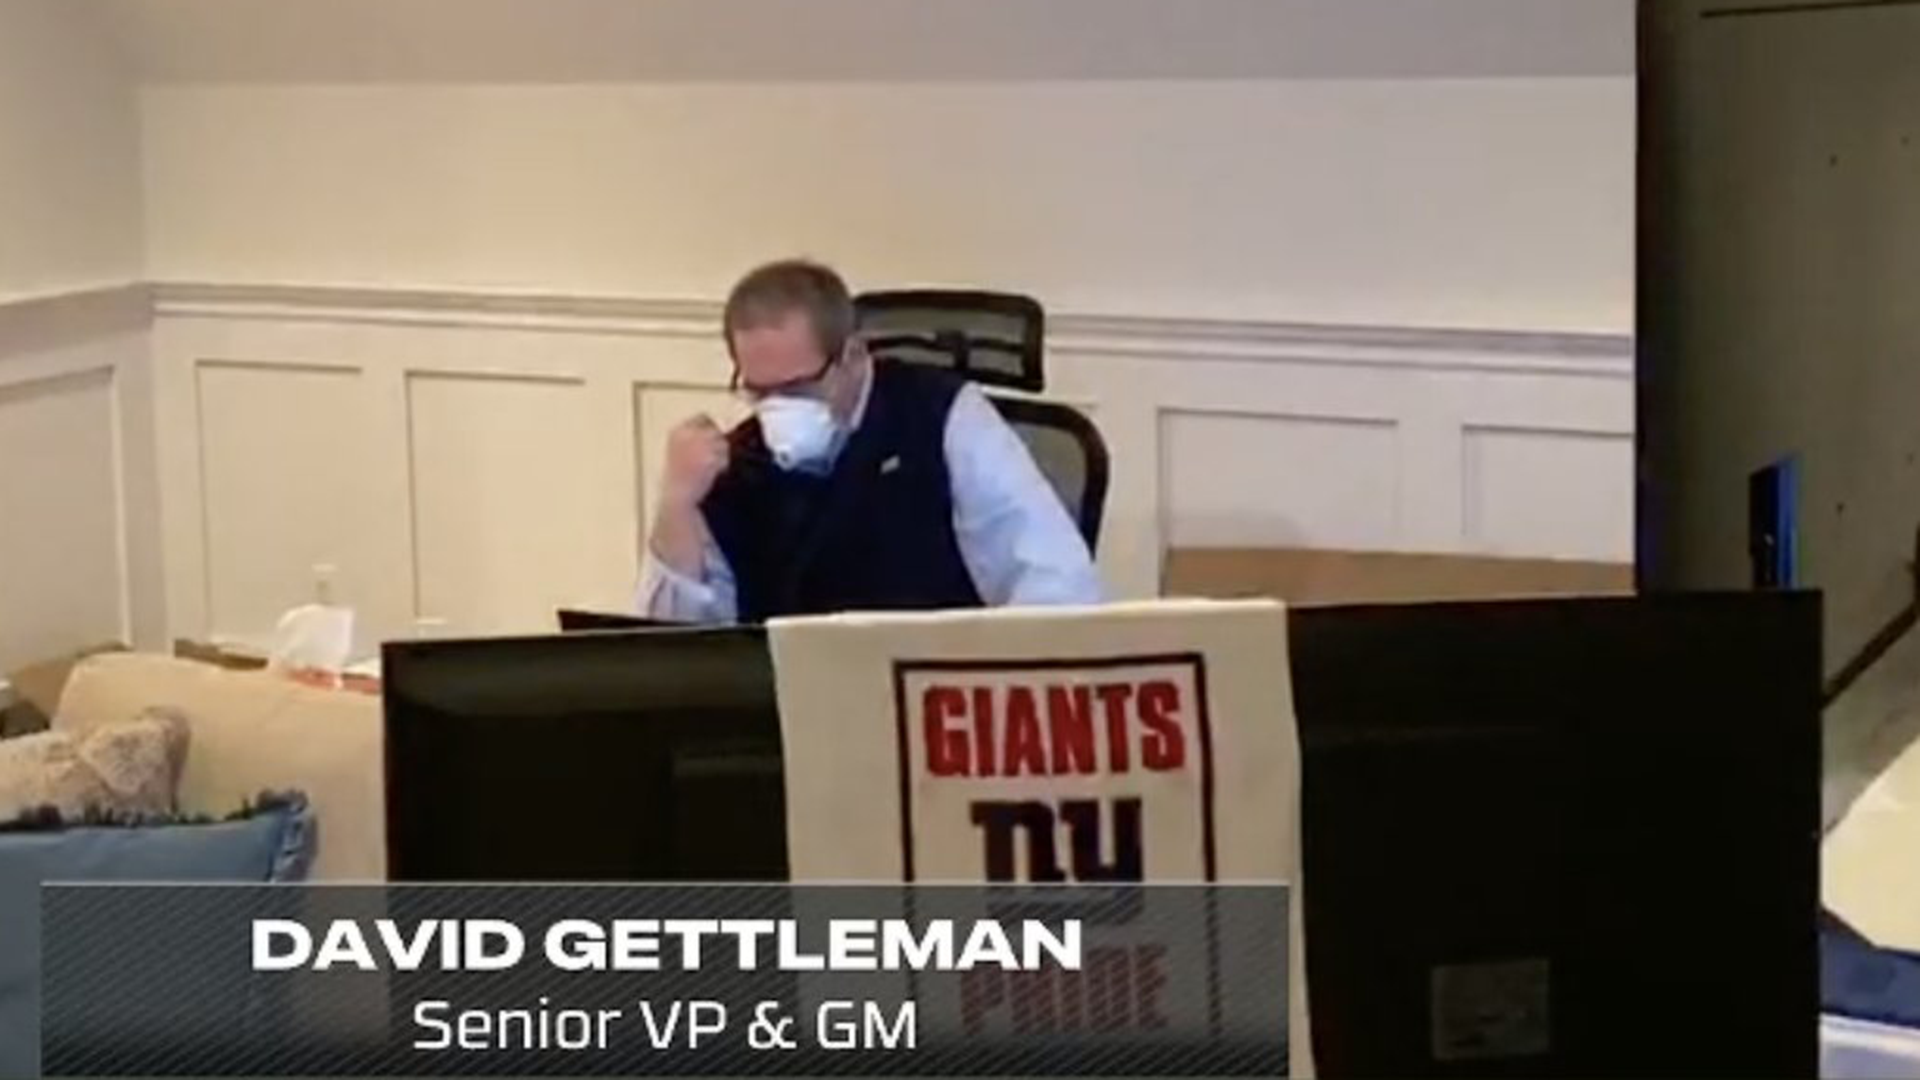 There's a good reason Dave Gettleman wore a mask in his empty NFL Draft room